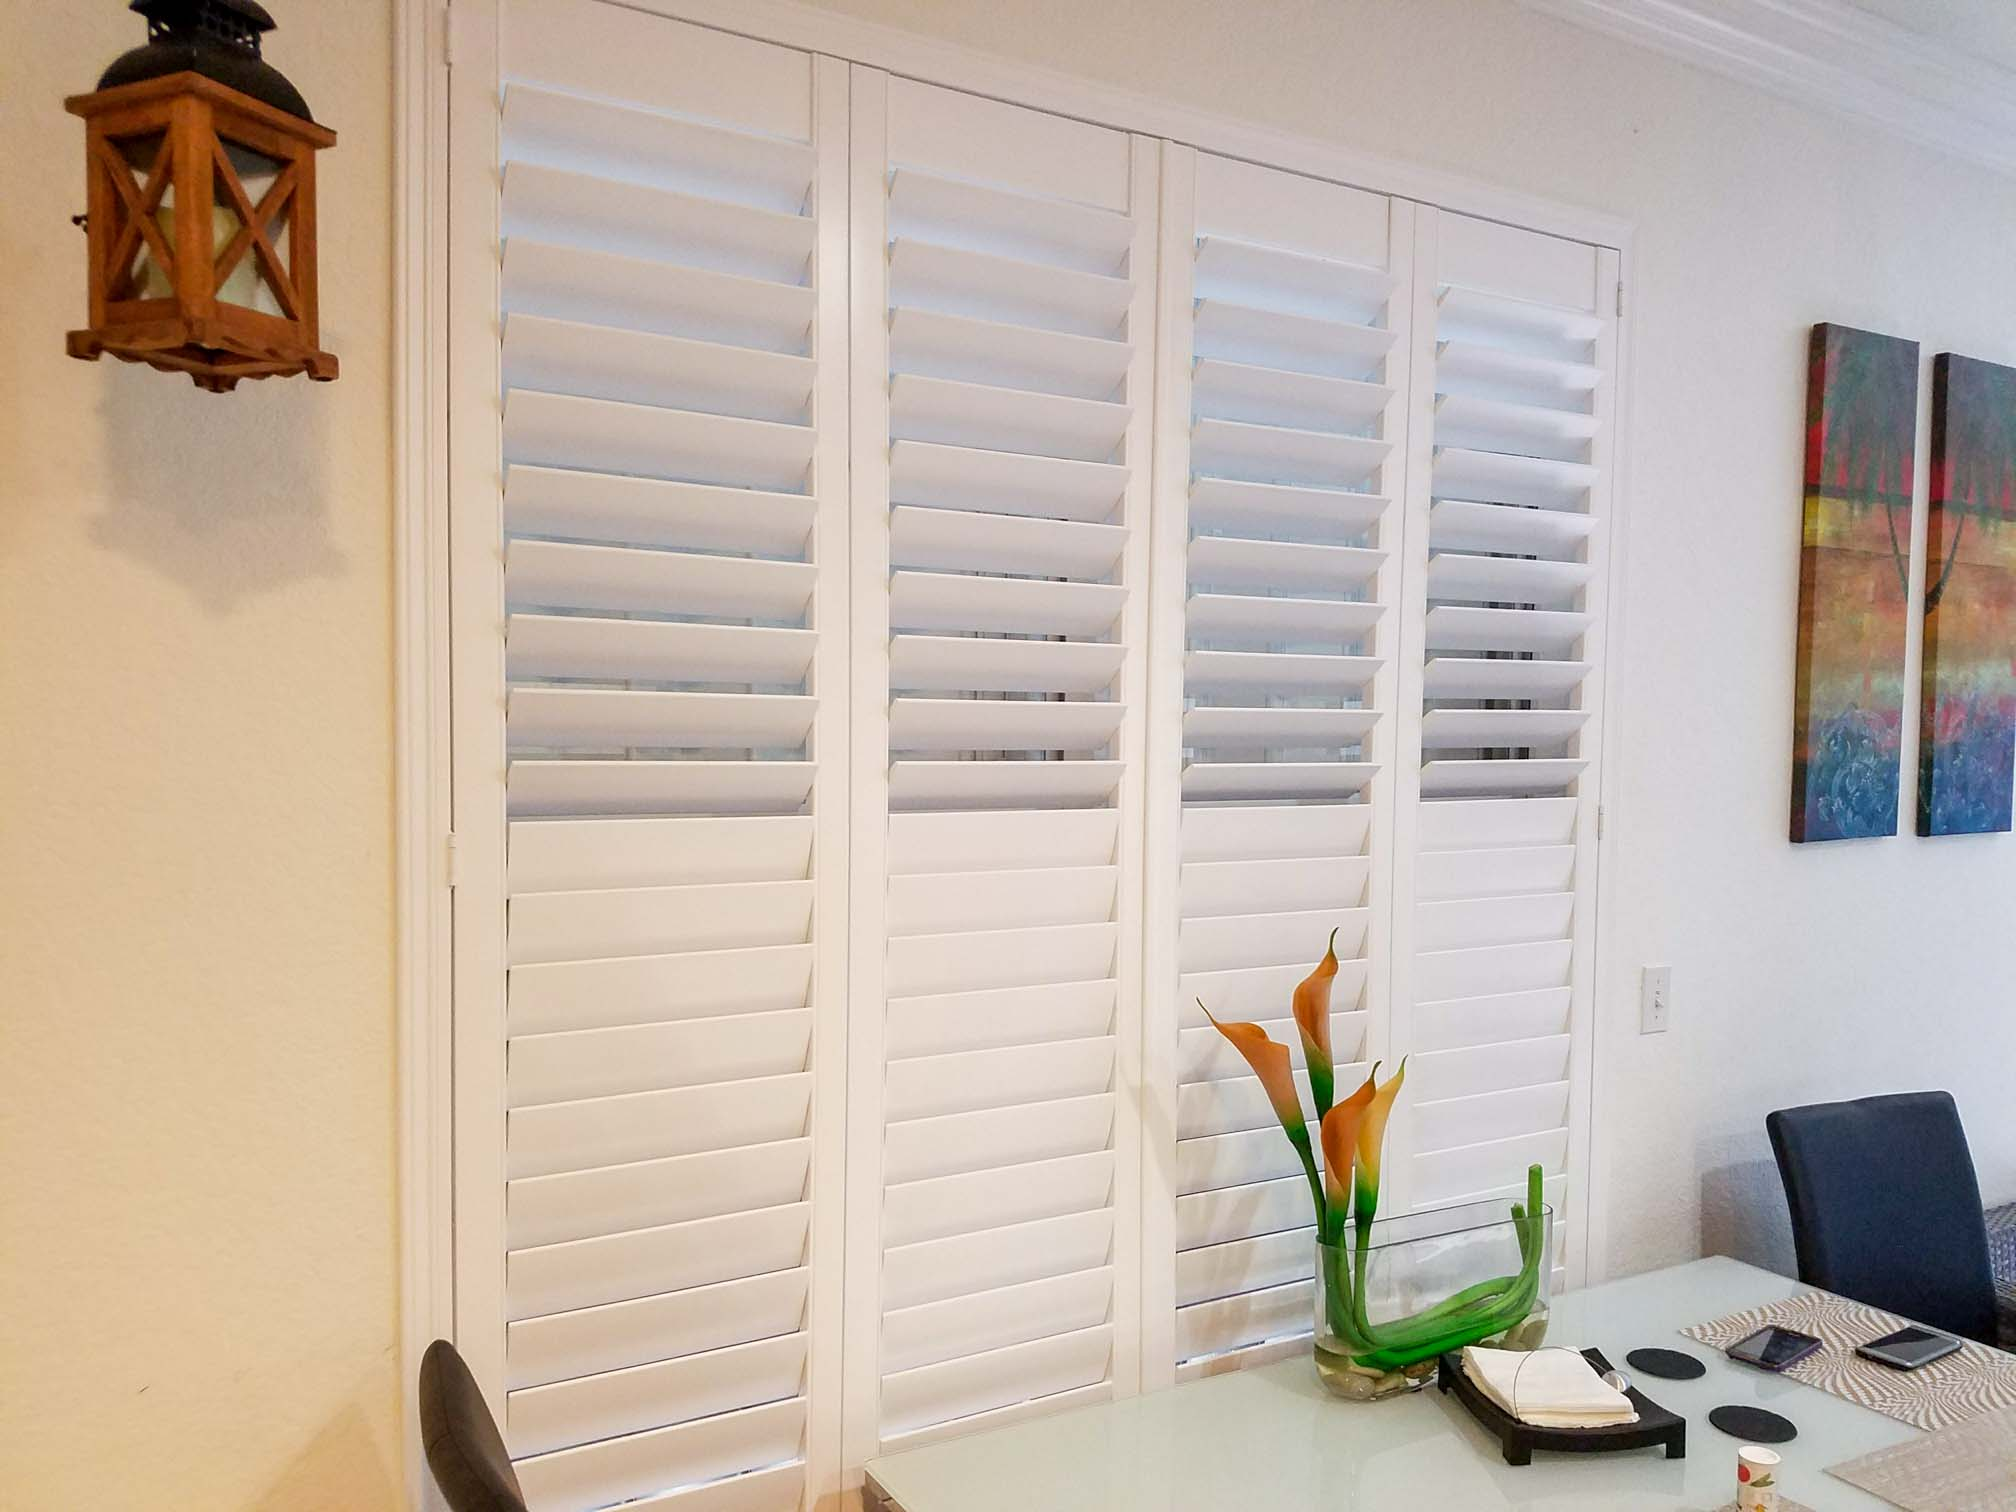 plantation shutters gallery PLANTATION SHUTTERS GALLERY 20161006 142414